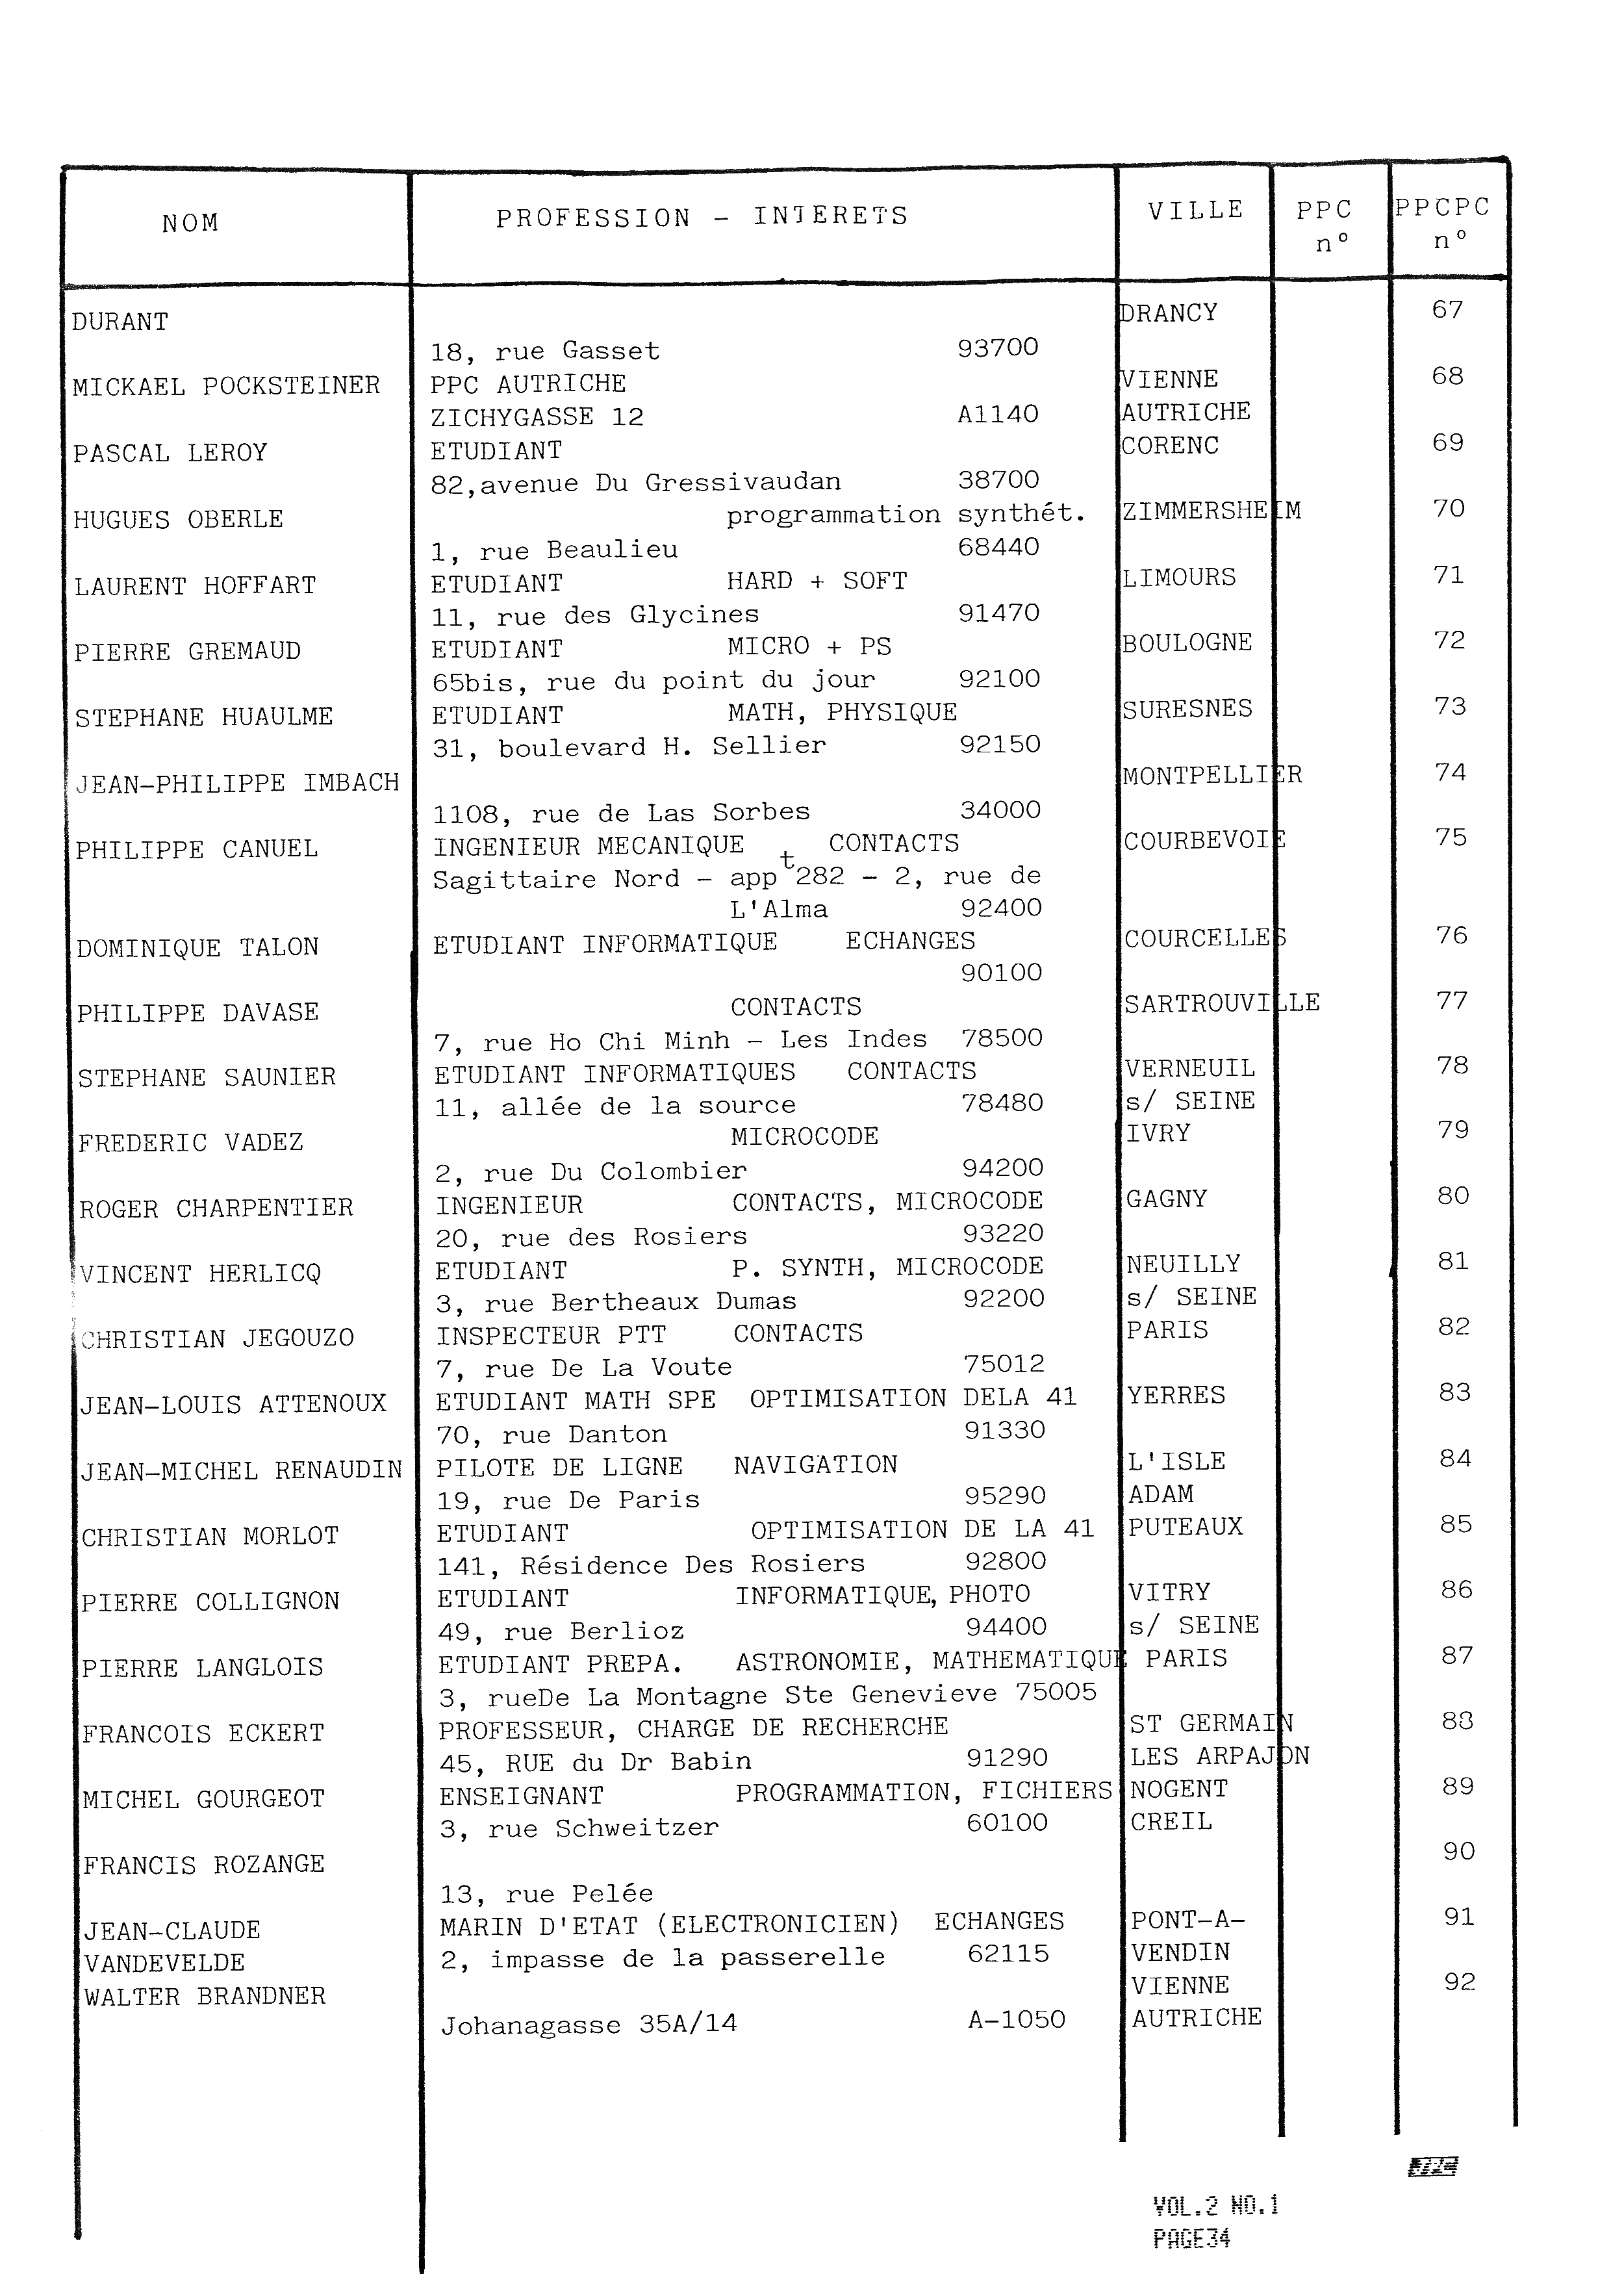 Jp-11-page-35-1000